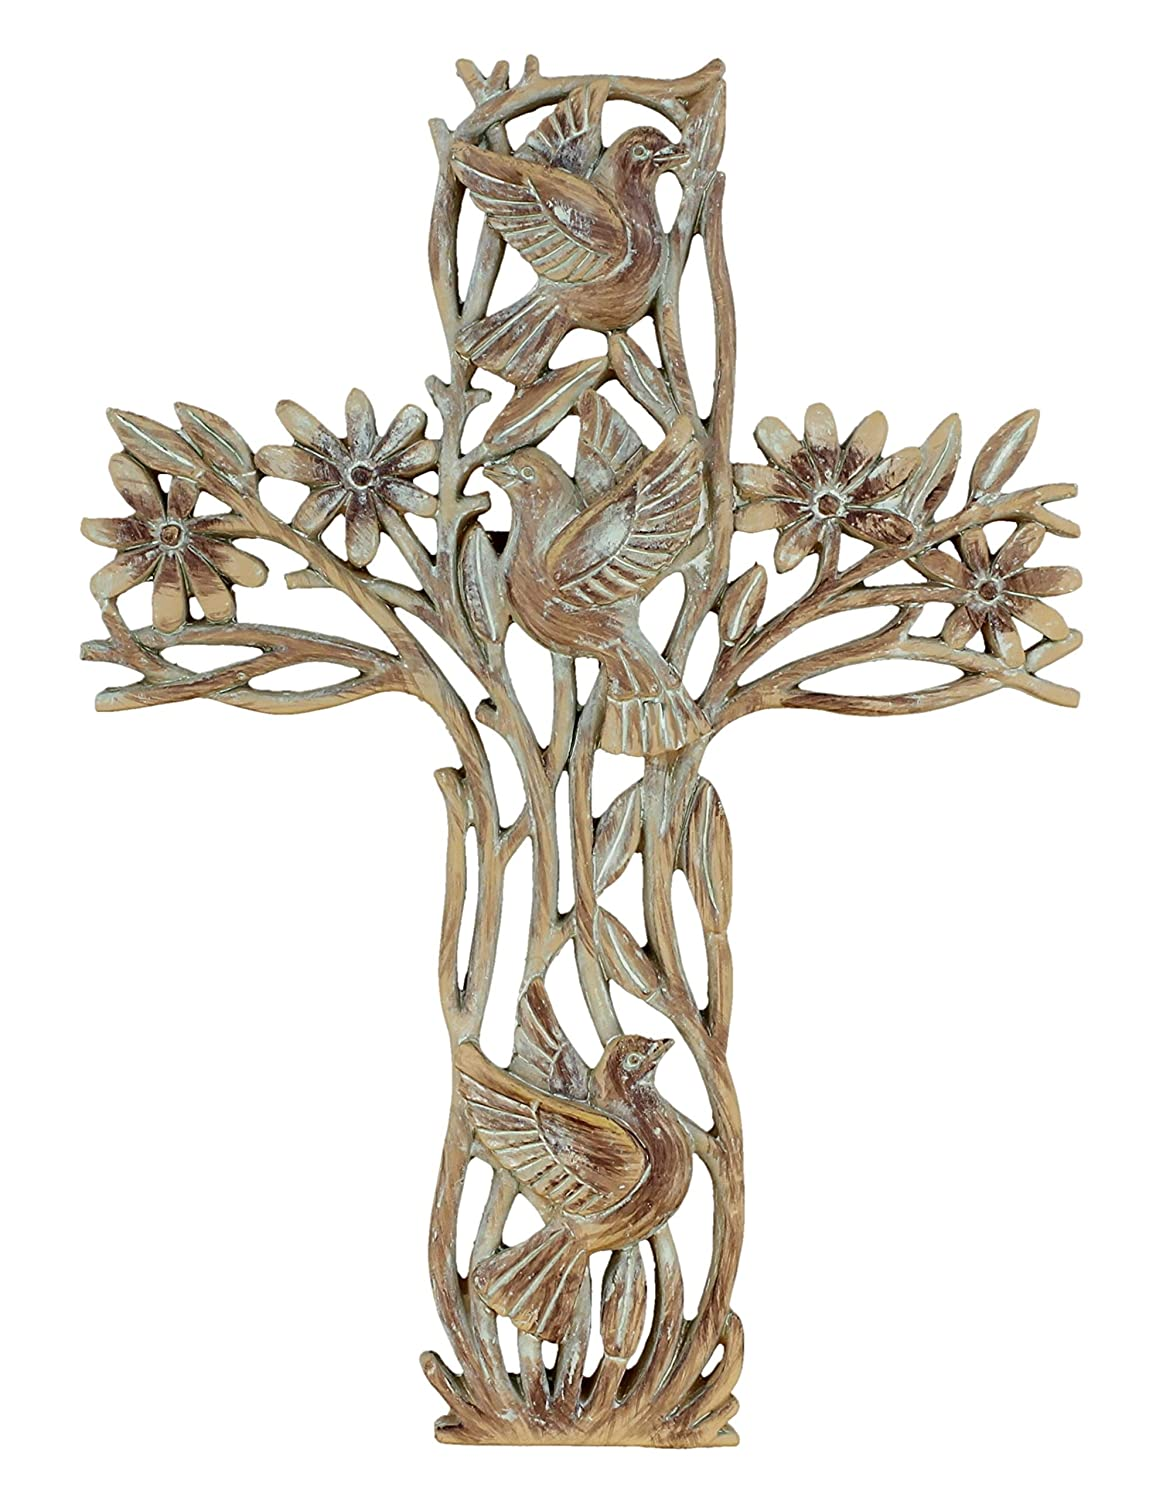 Old River Outdoors Garden of Life Wall Cross - Rustic Carved Wood Look Flowers and Doves Decorative Spiritual Art